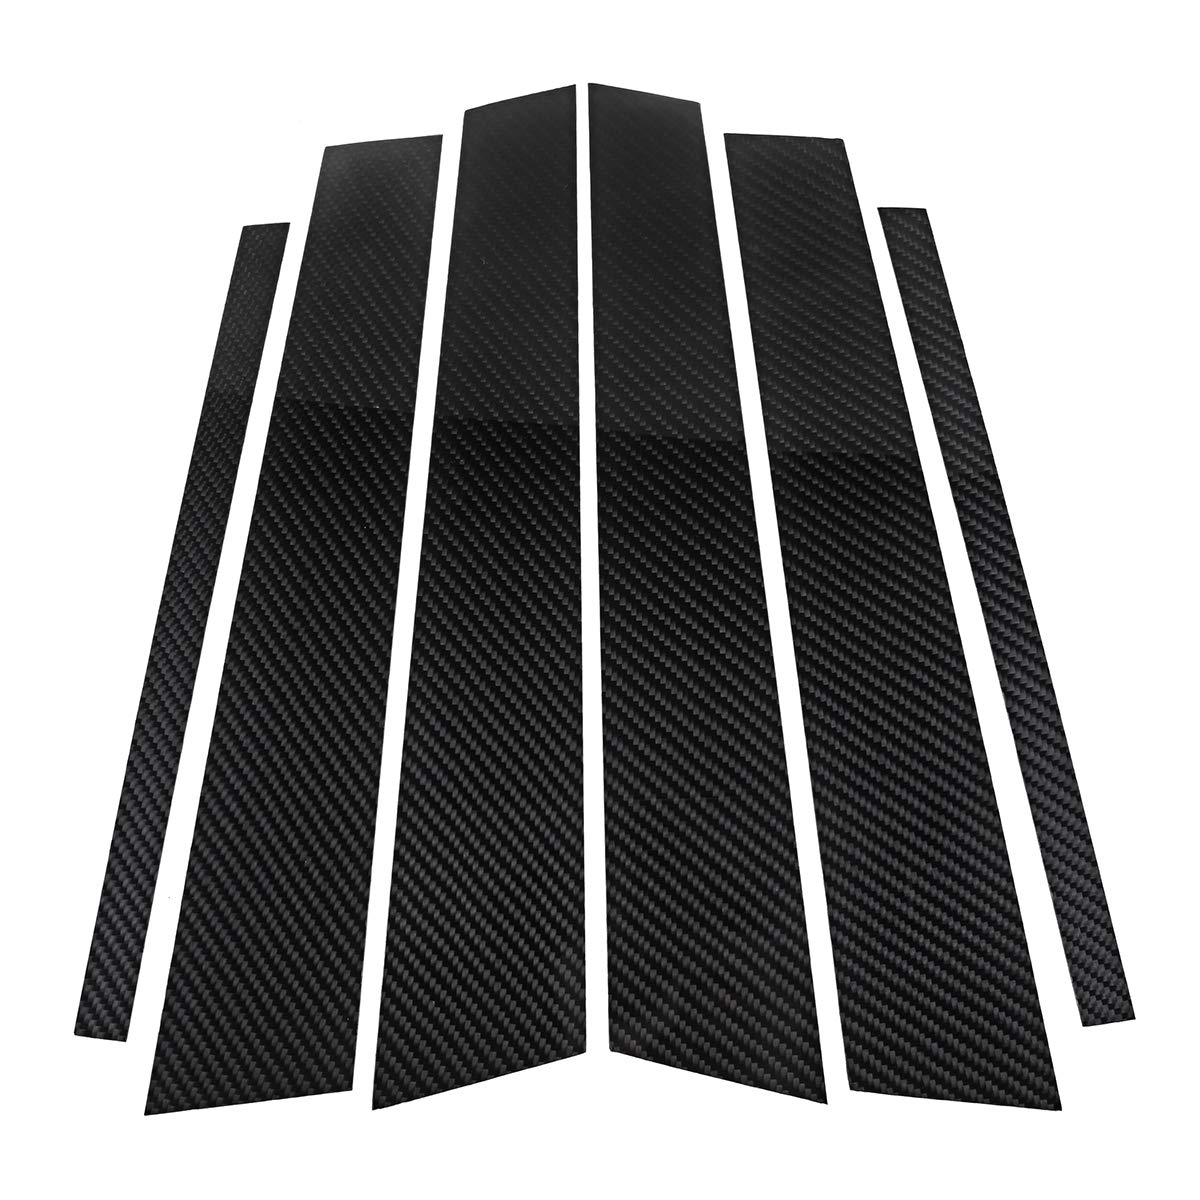 Yoton Exterior Accessories Carbon Fiber Car Window B-Pillars Molding Trim Car Styling Stickers for BMW 3 5 Series